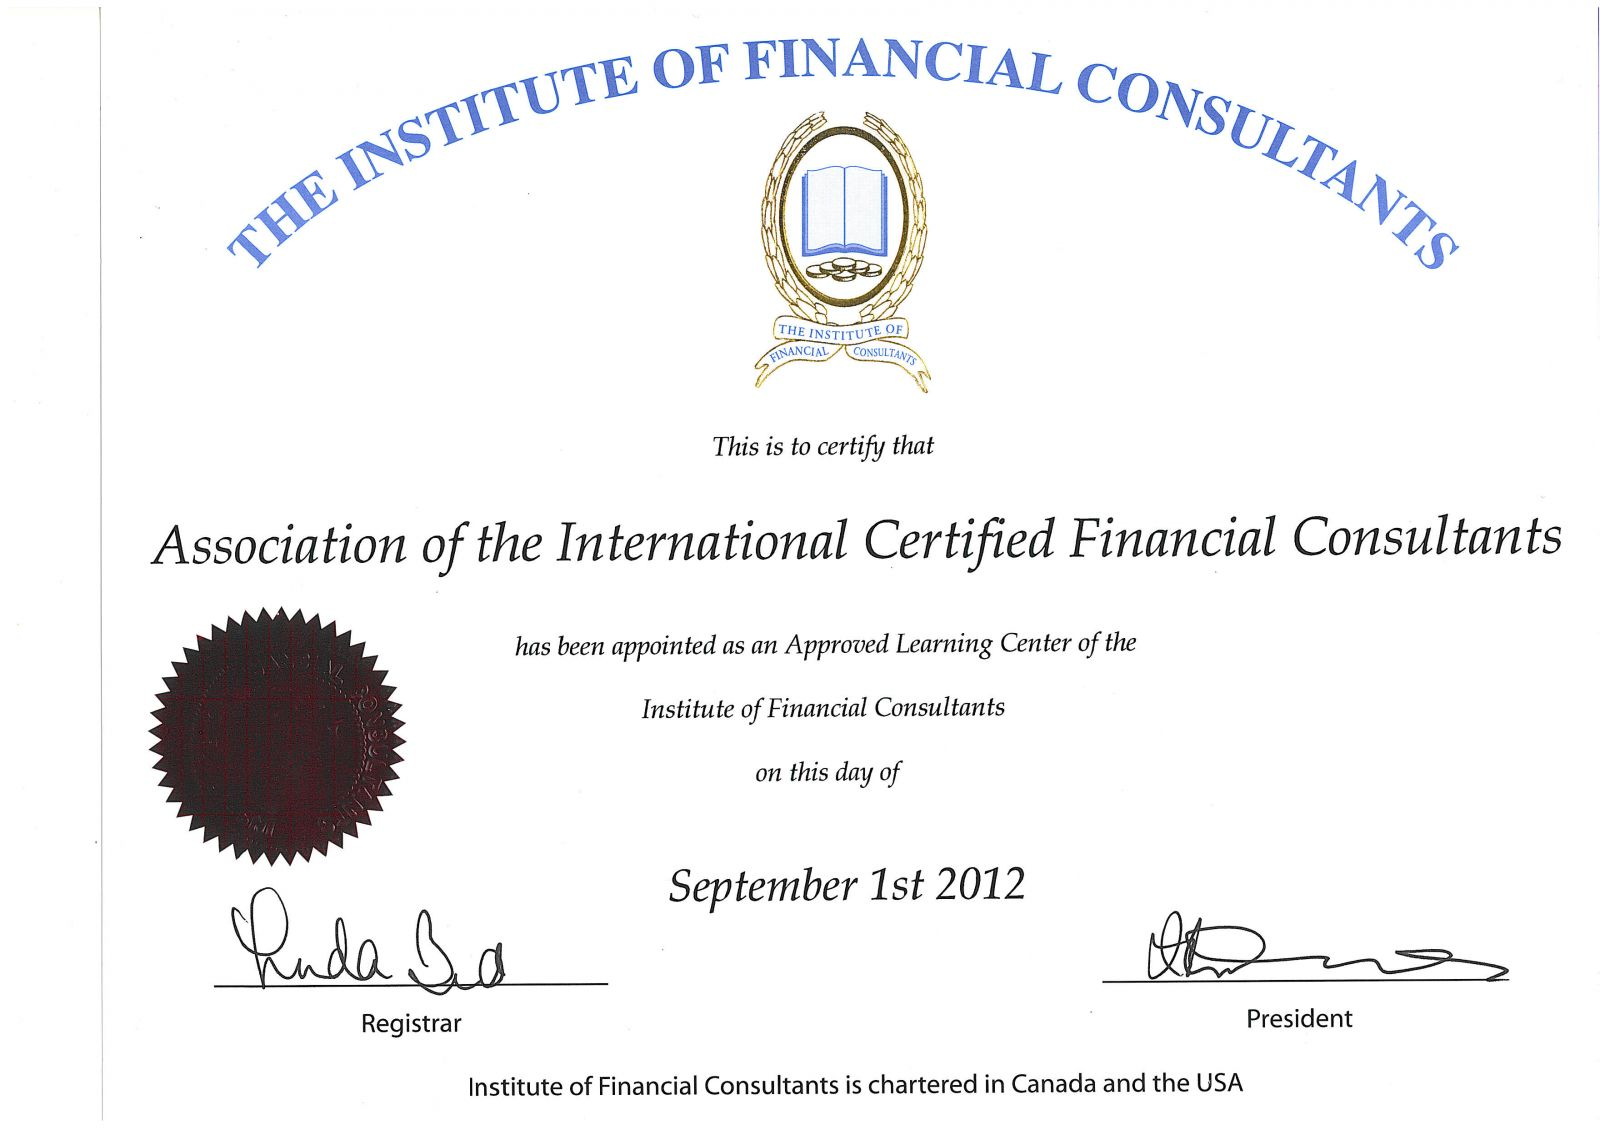 Association Of The International Certified Financial Consultants